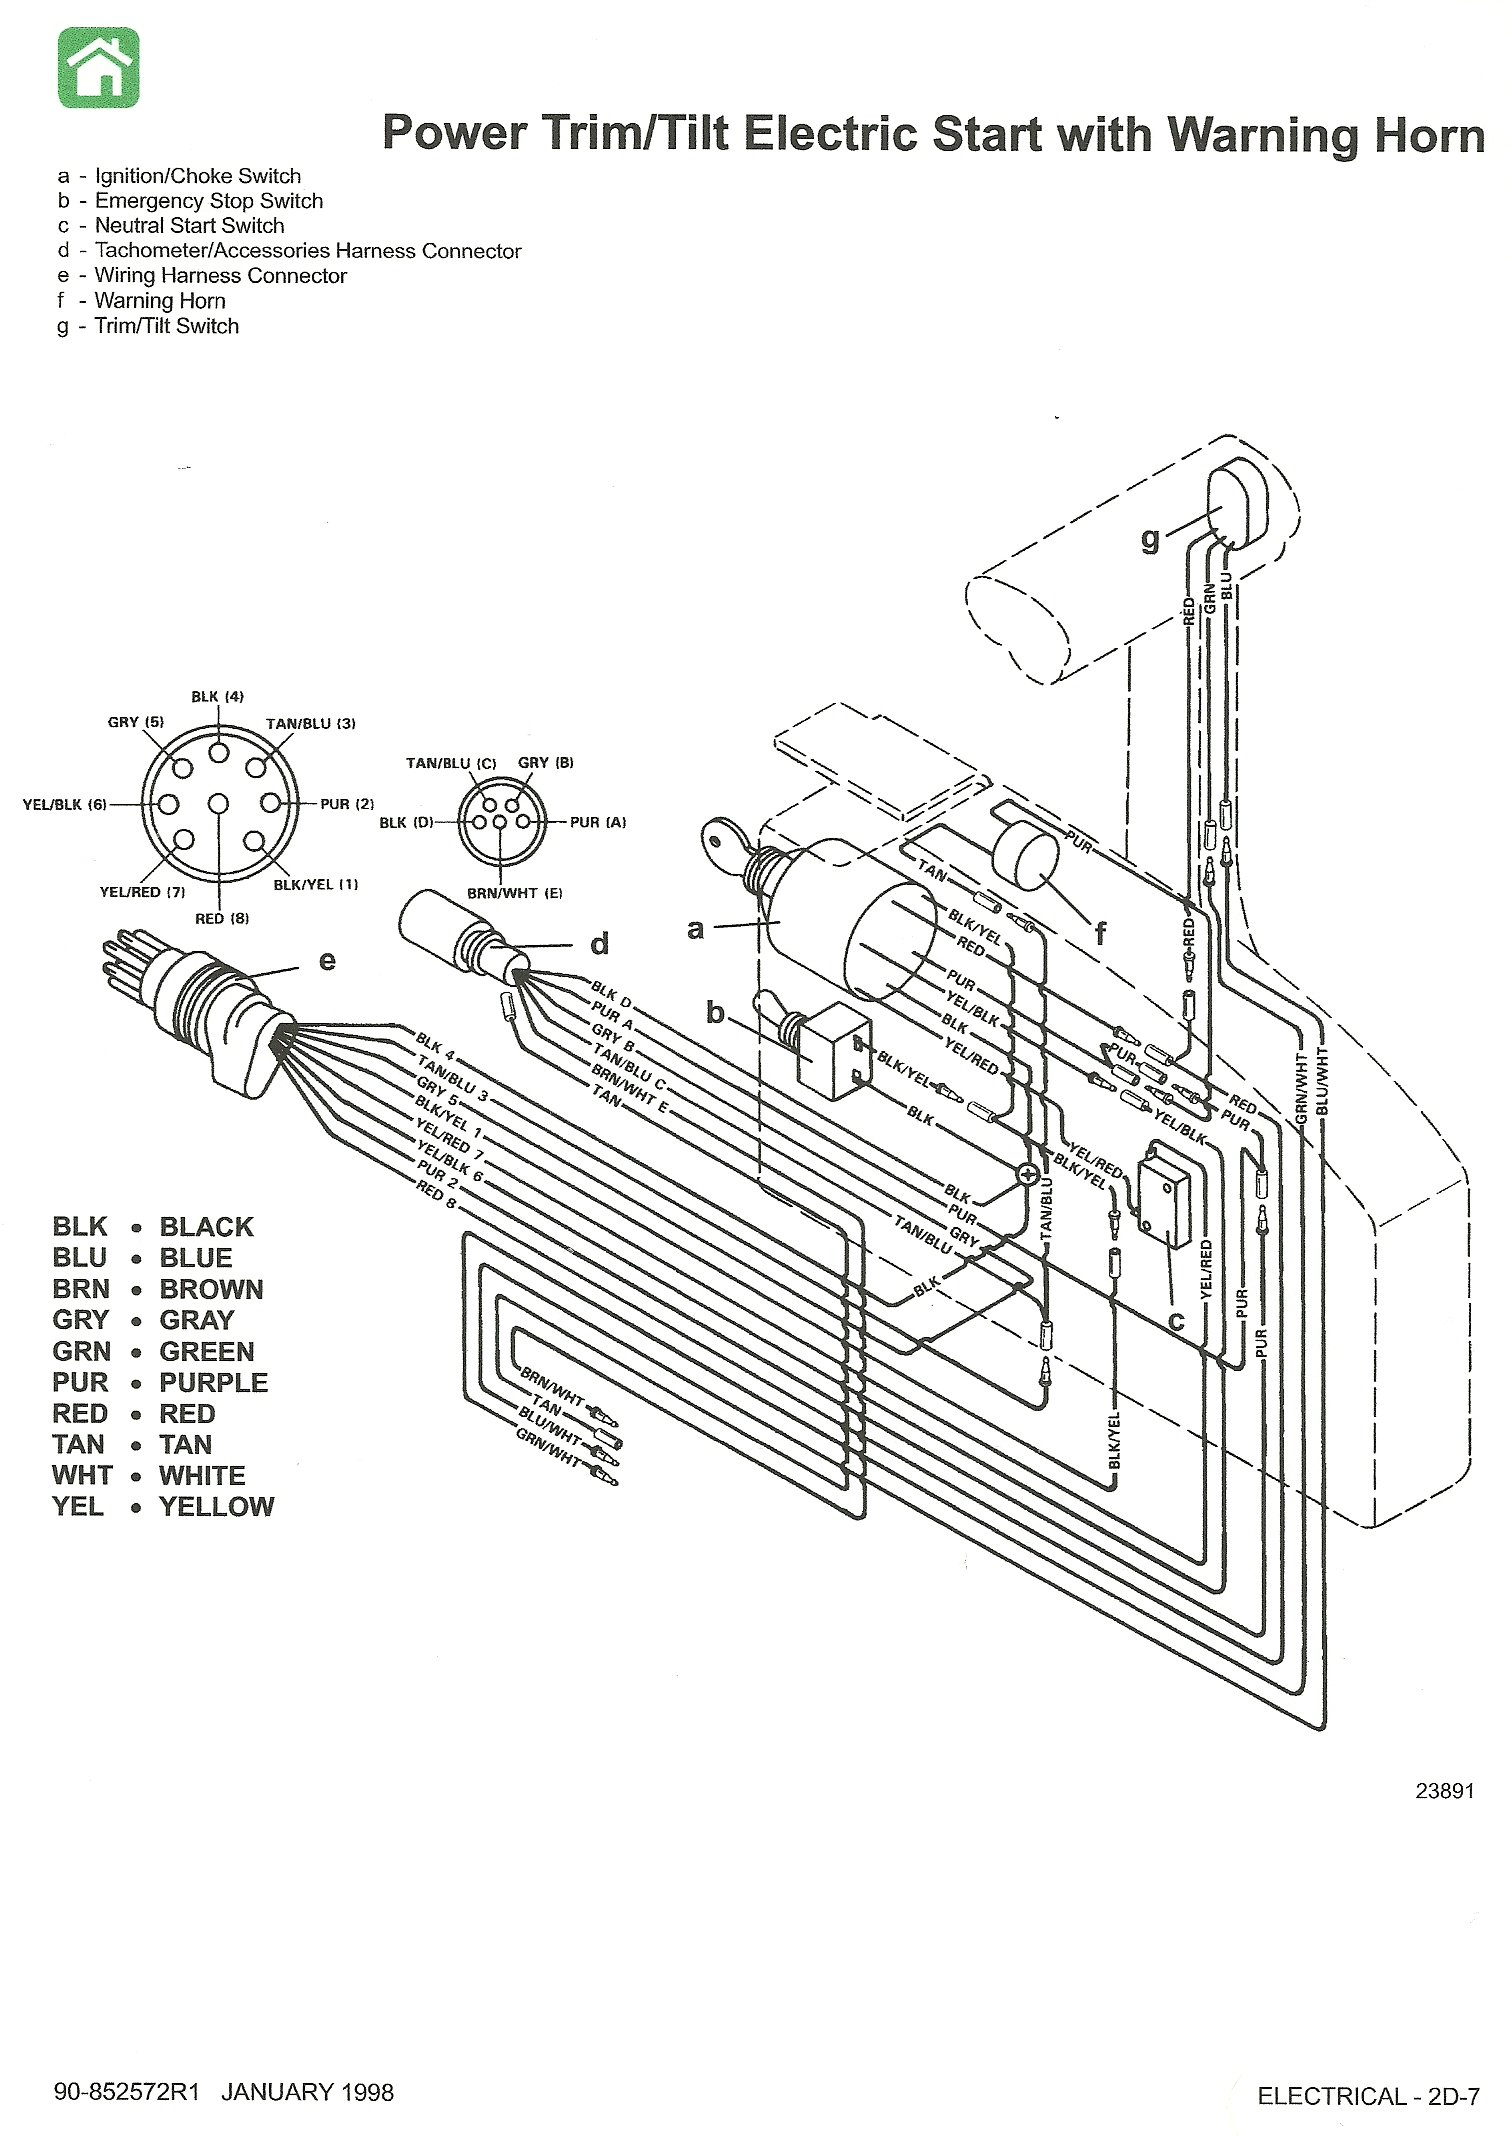 1998 mercury outboard wire schematics 90 mercury outboard wiring diagram free download i have a 1998 50hp mercury outboard motor ser # 0g6291554 ...